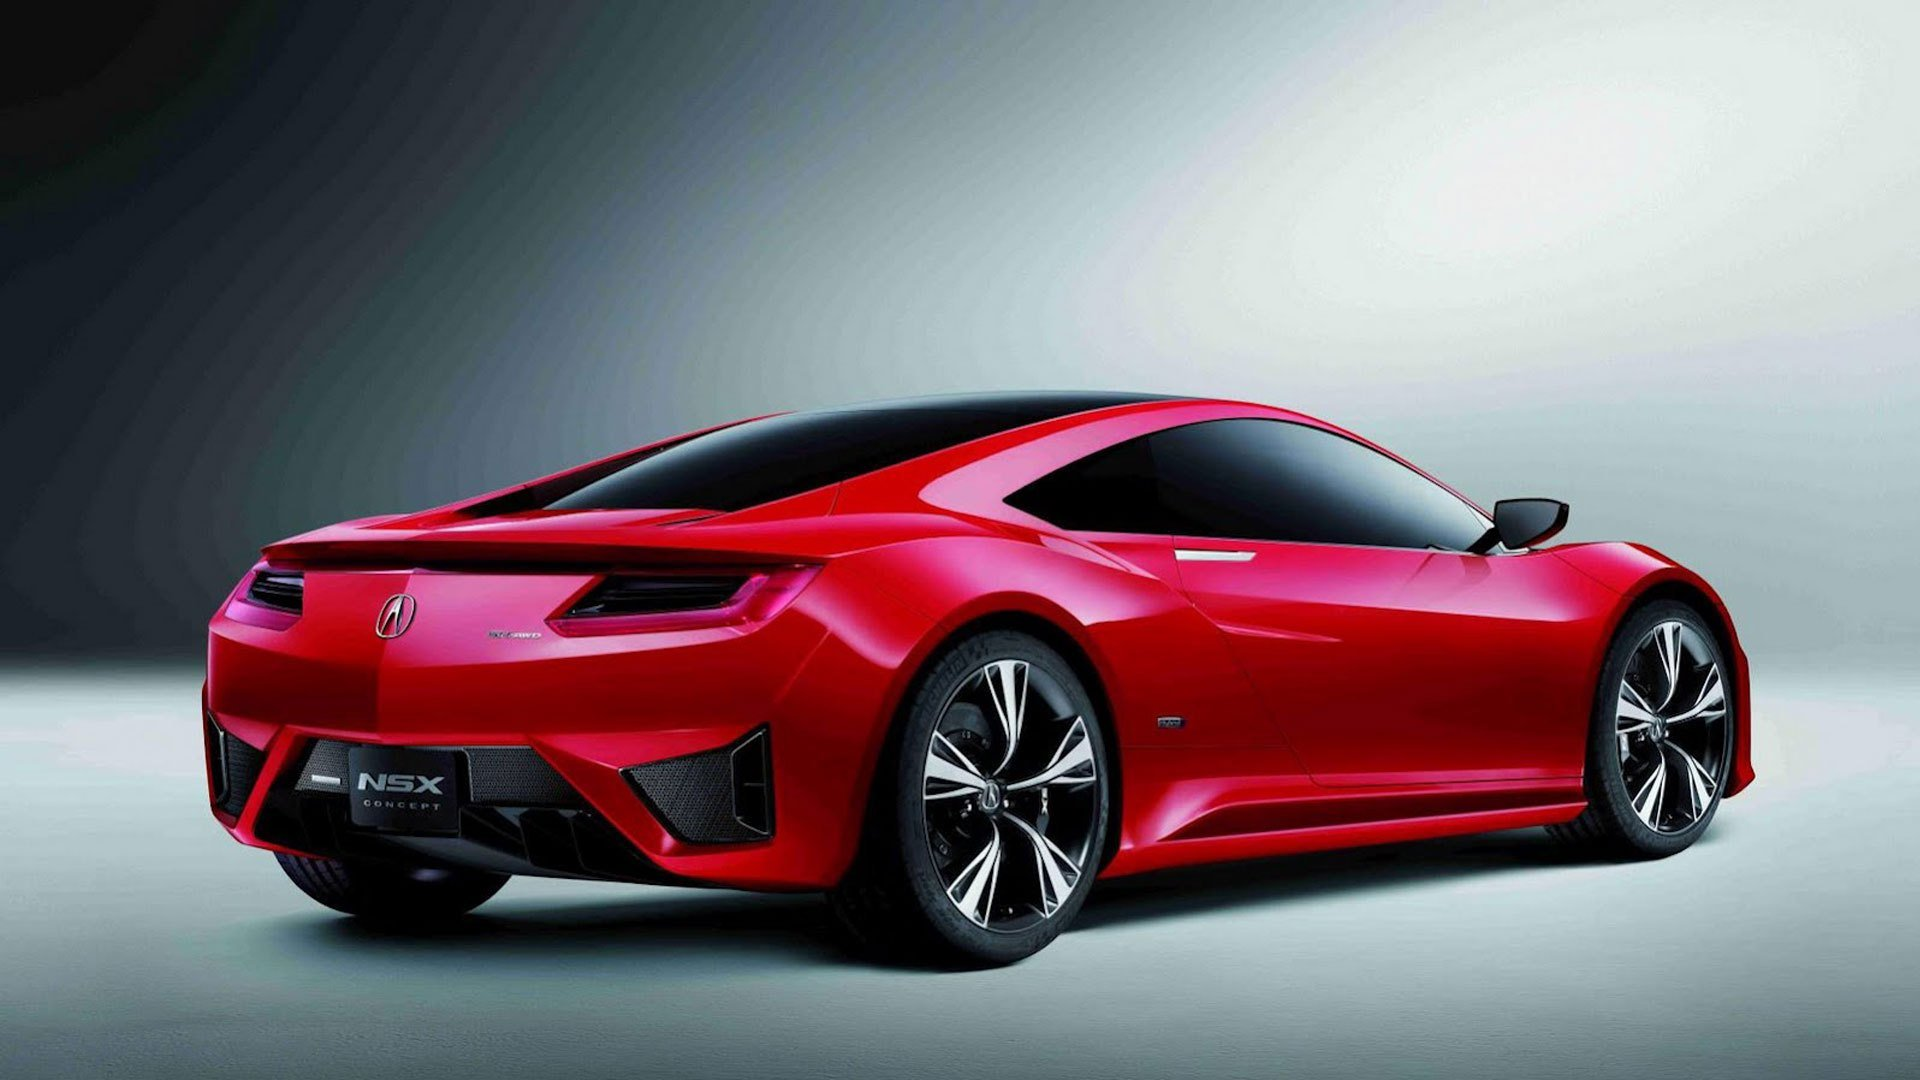 Latest Acura Nsx Red Modification Cars Wallpaper 445 Wallpaper Free Download